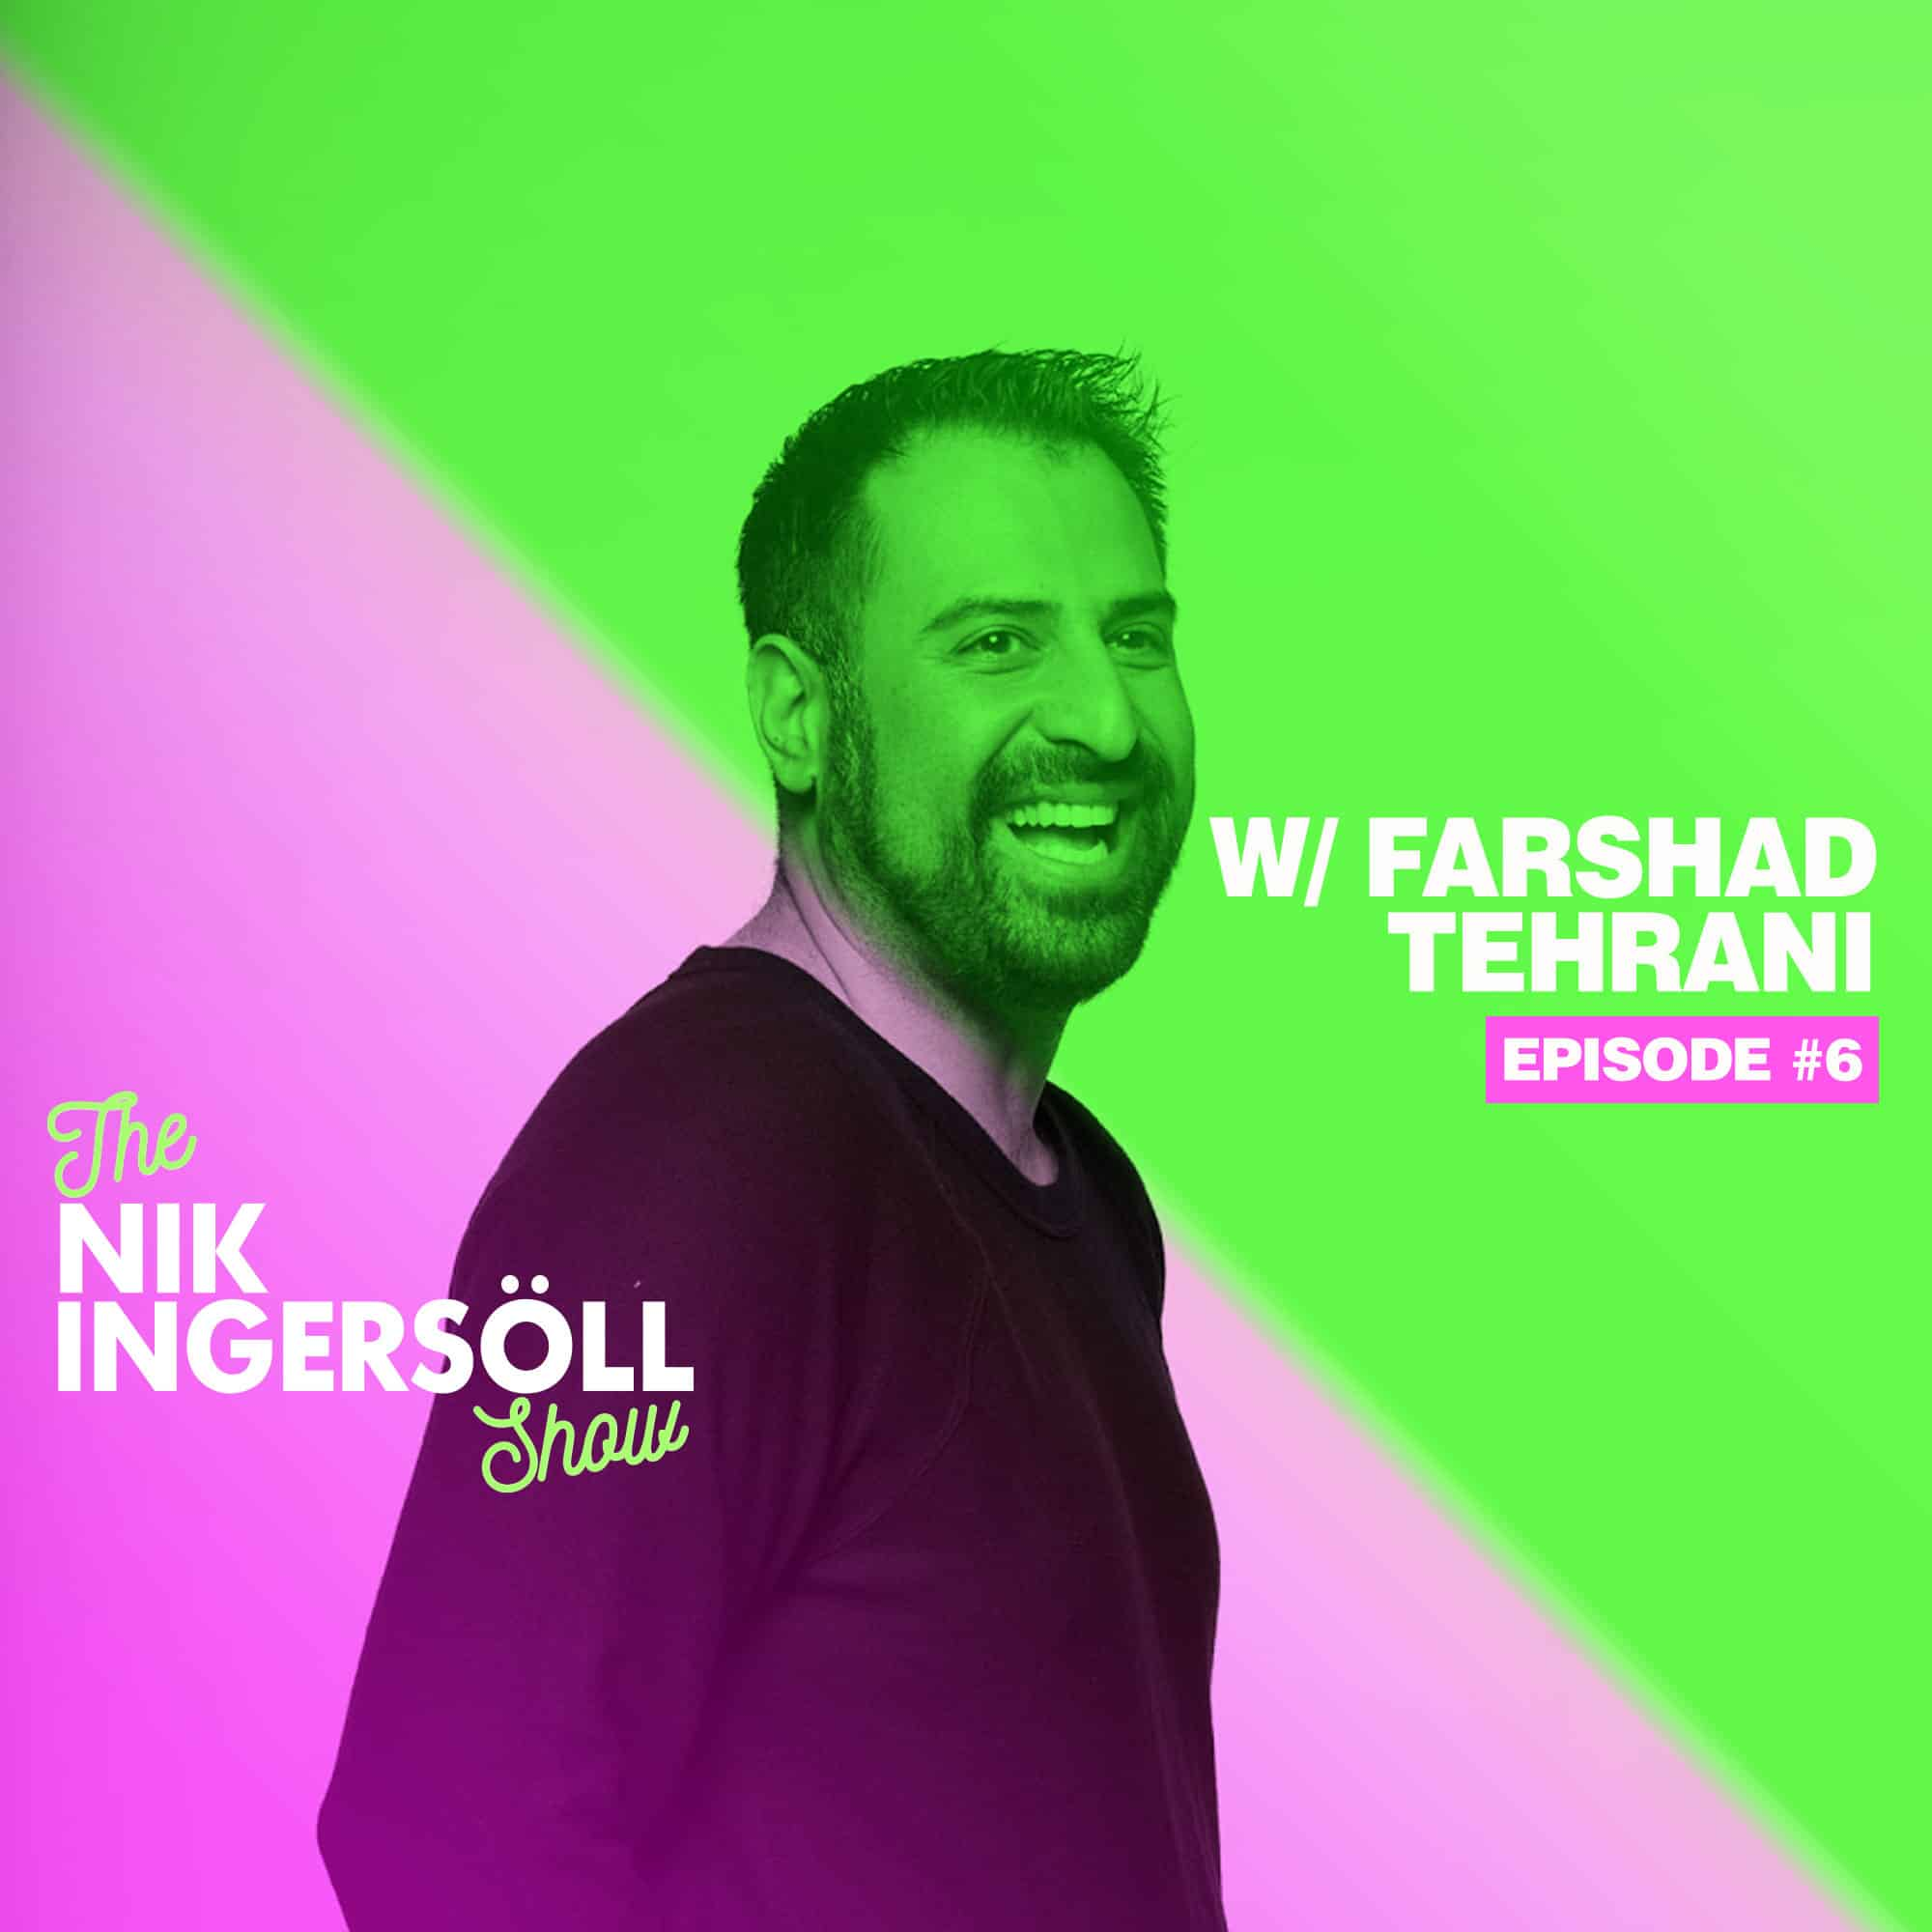 #6: Farshad Tehrani – Farghini Salomondrin – (Podcast) The Nik Ingersoll Show